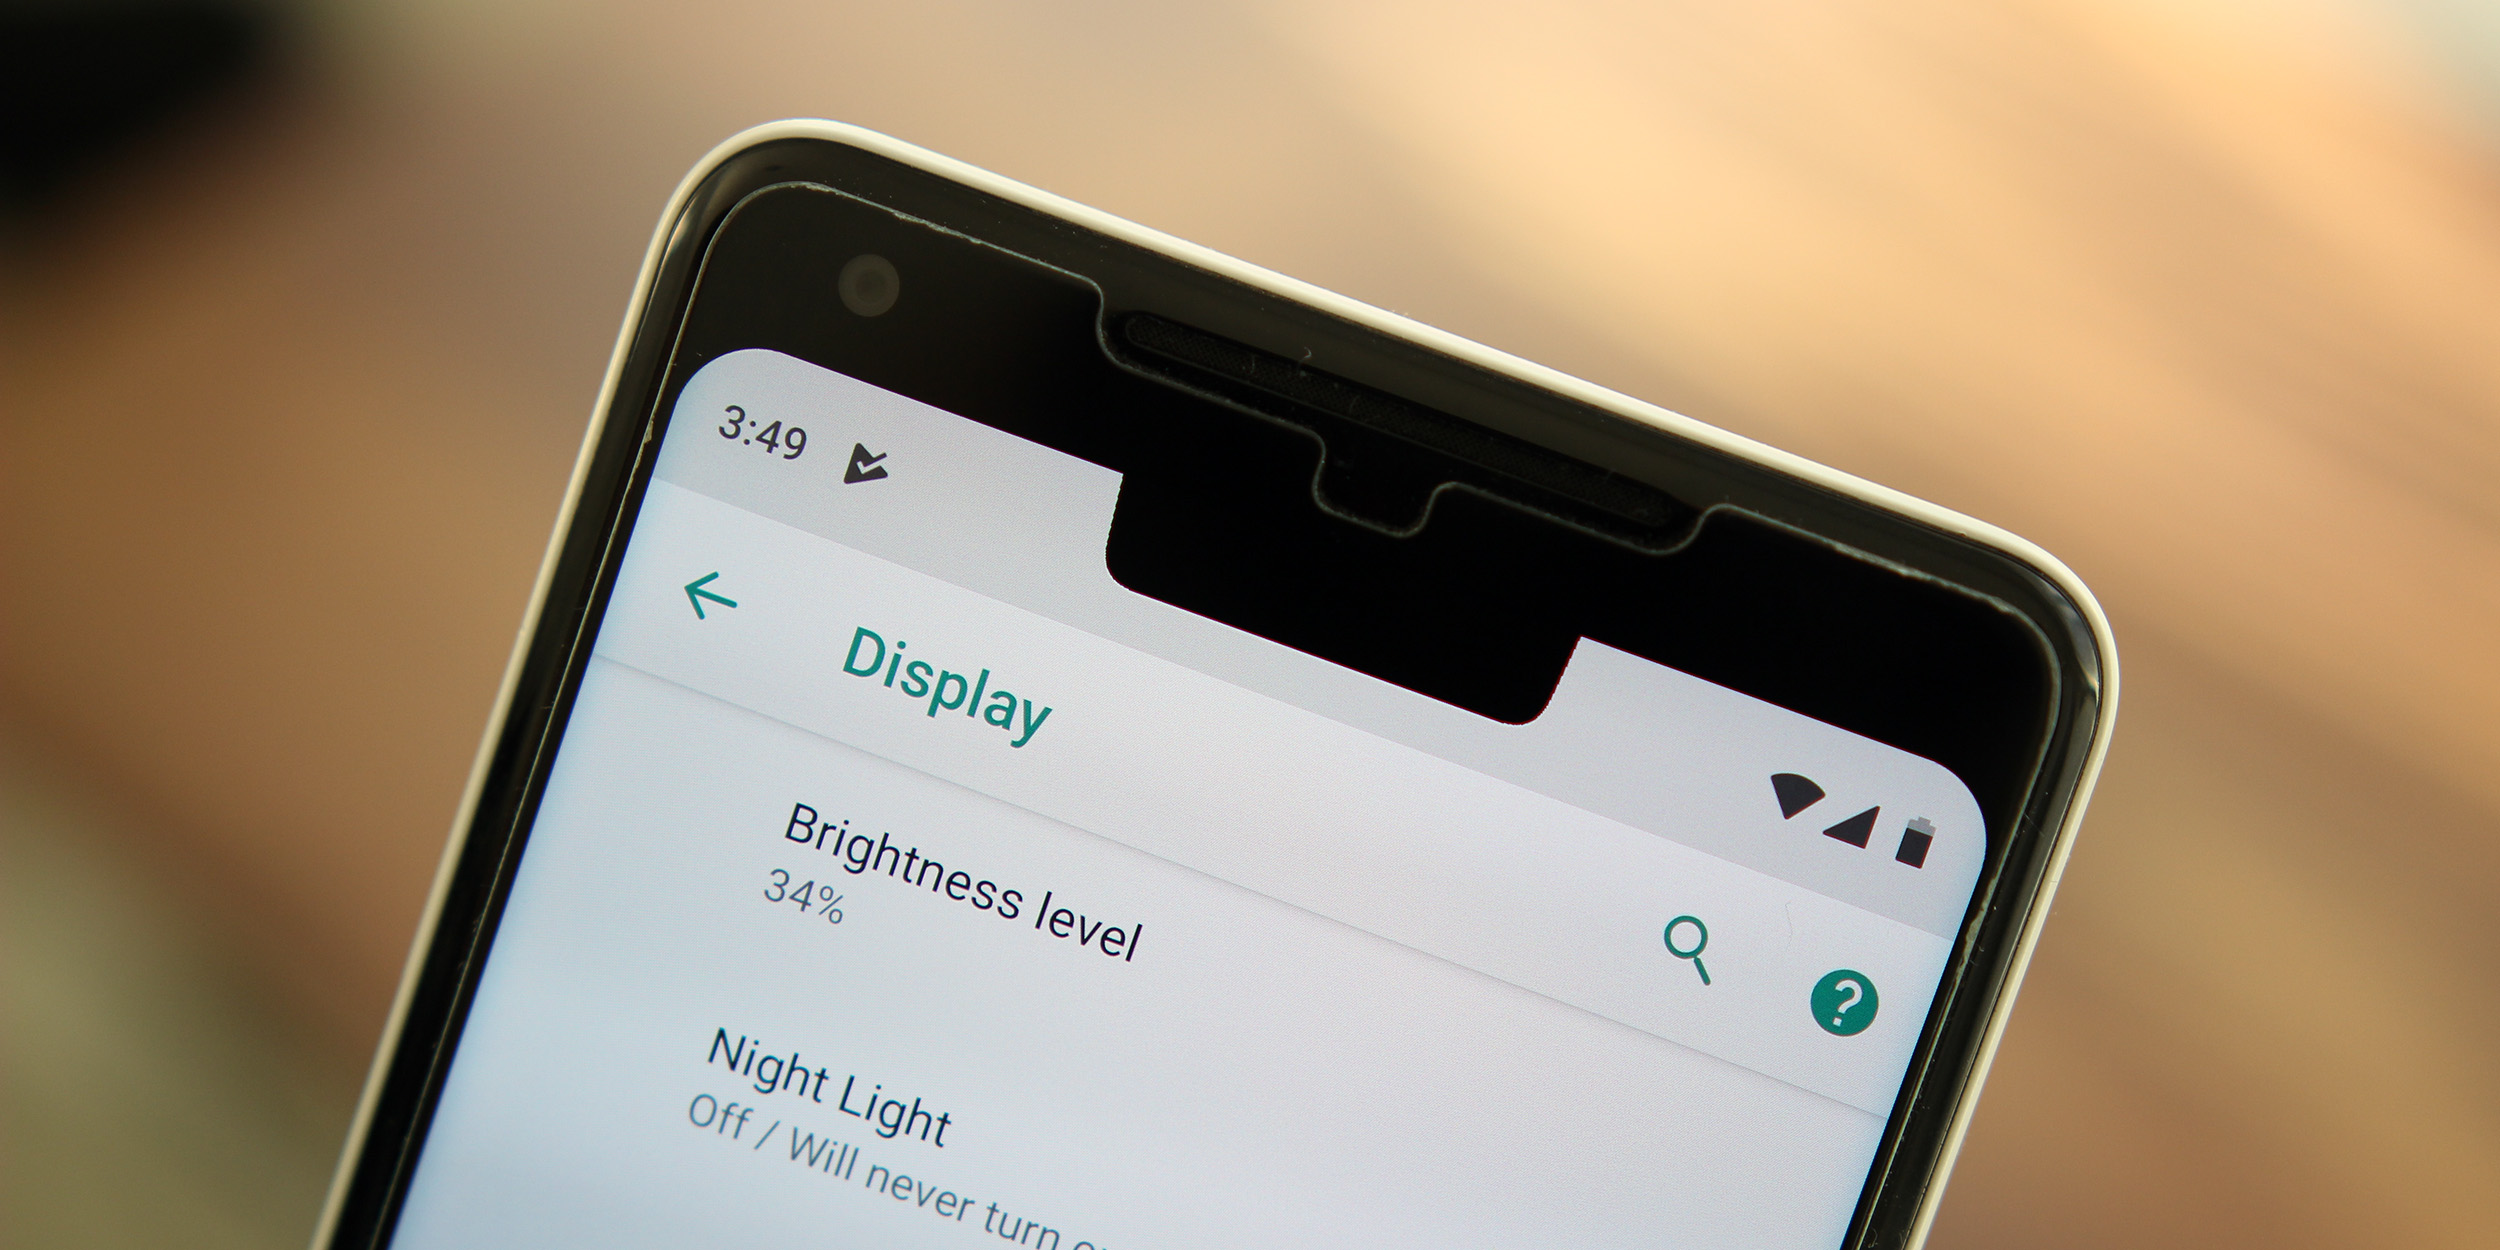 Android P DP1: Google moved the clock to the left side to